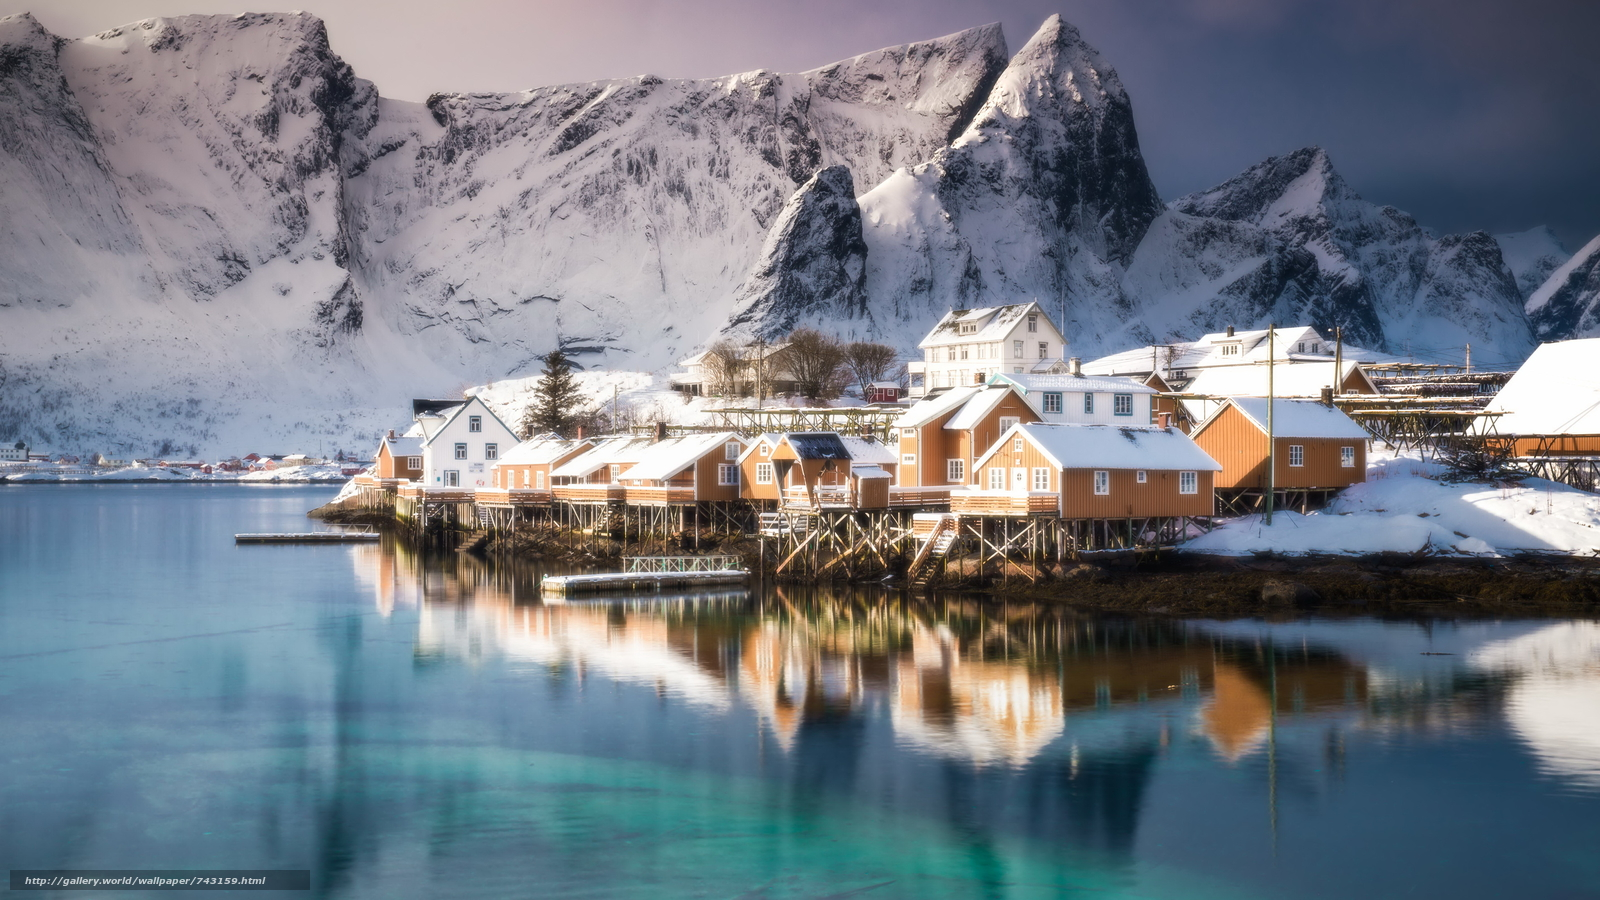 Lofoten, Norway, Lofoten, island, winter, snow, the mountains, rock, houses, water, sky, landscape, nature, view, reflection, vertices